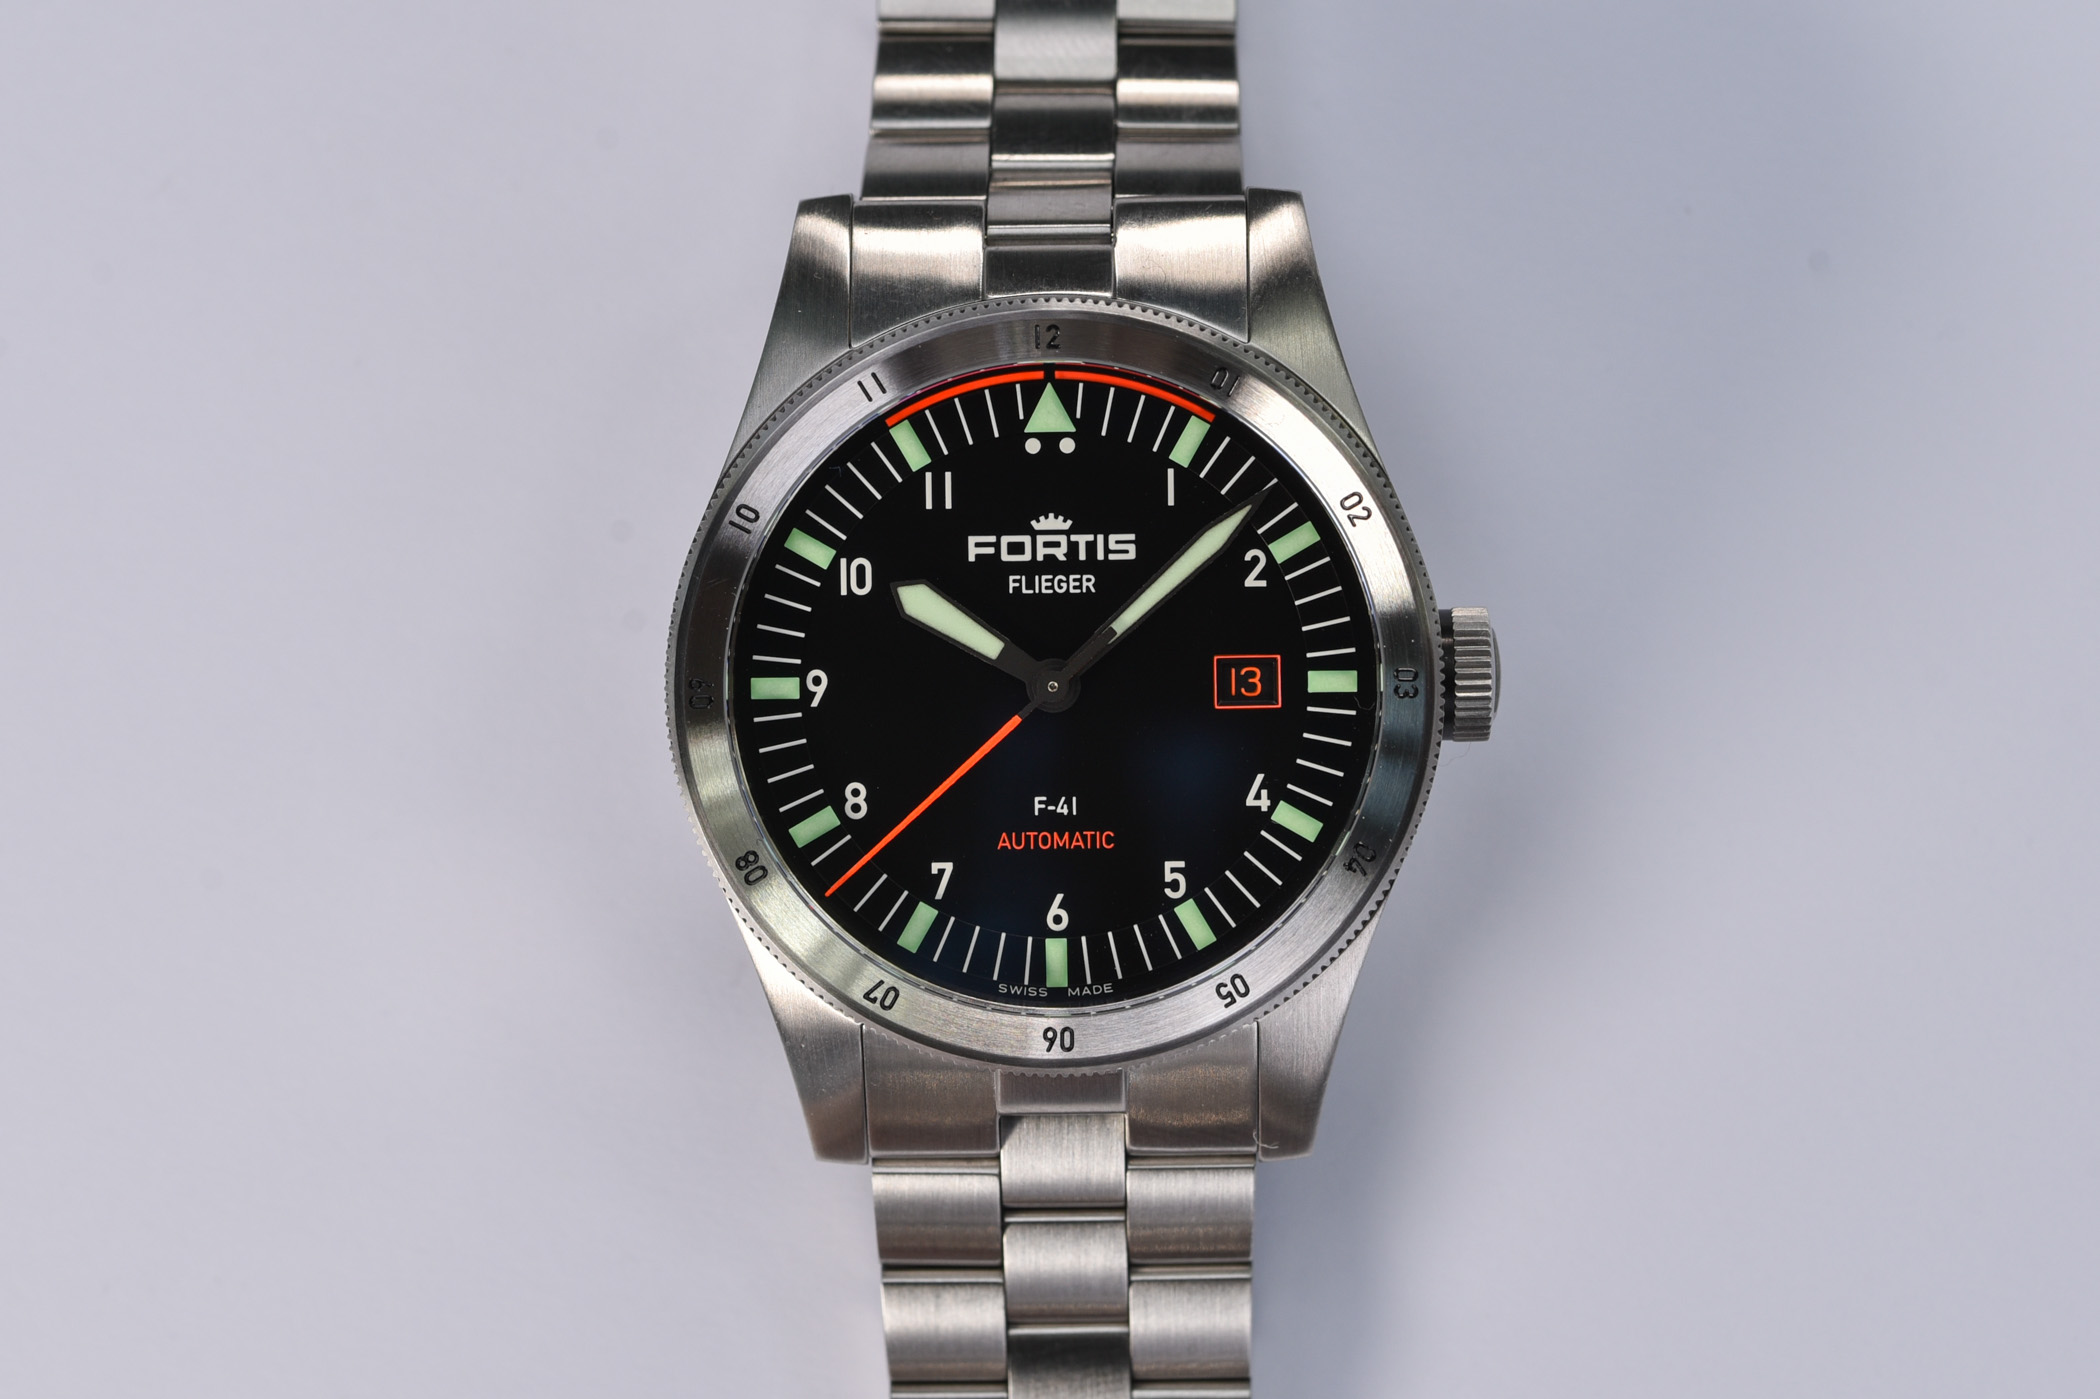 Fortis Flieger F-41 Automatic - Fortis Flieger F-39 Automatic - 1